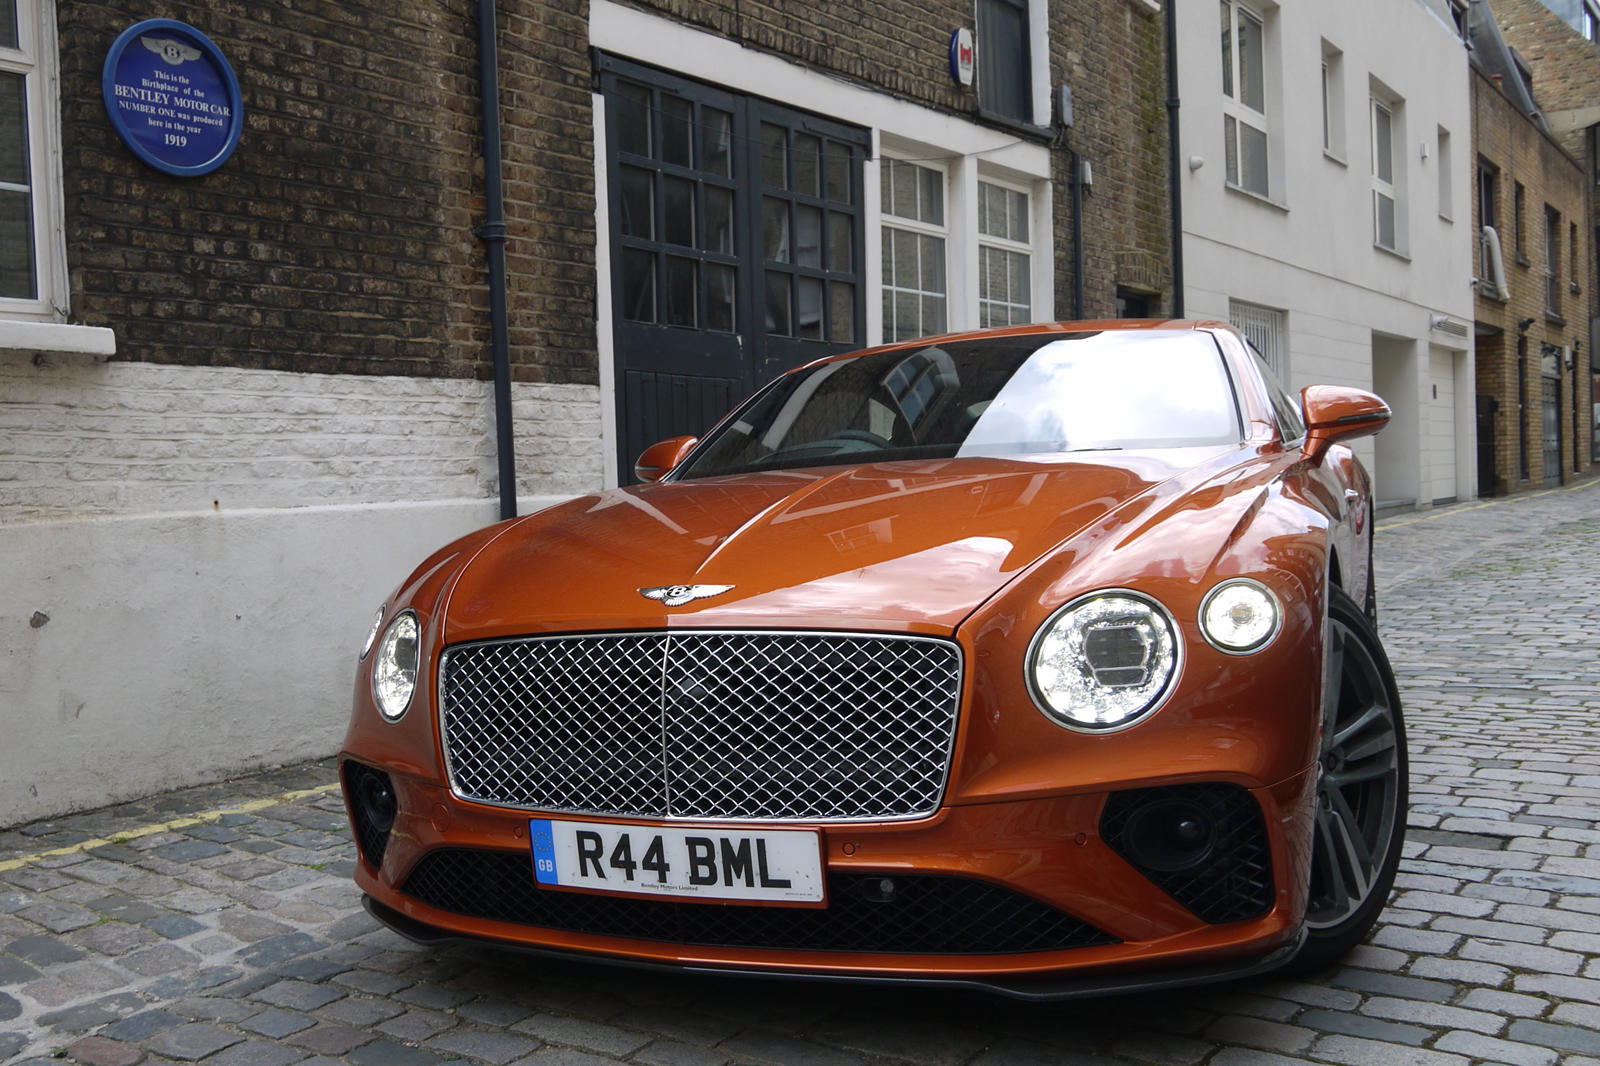 2019 Bentley Continental Gt Review Trims Specs Price New Interior Features Exterior Design And Specifications Carbuzz